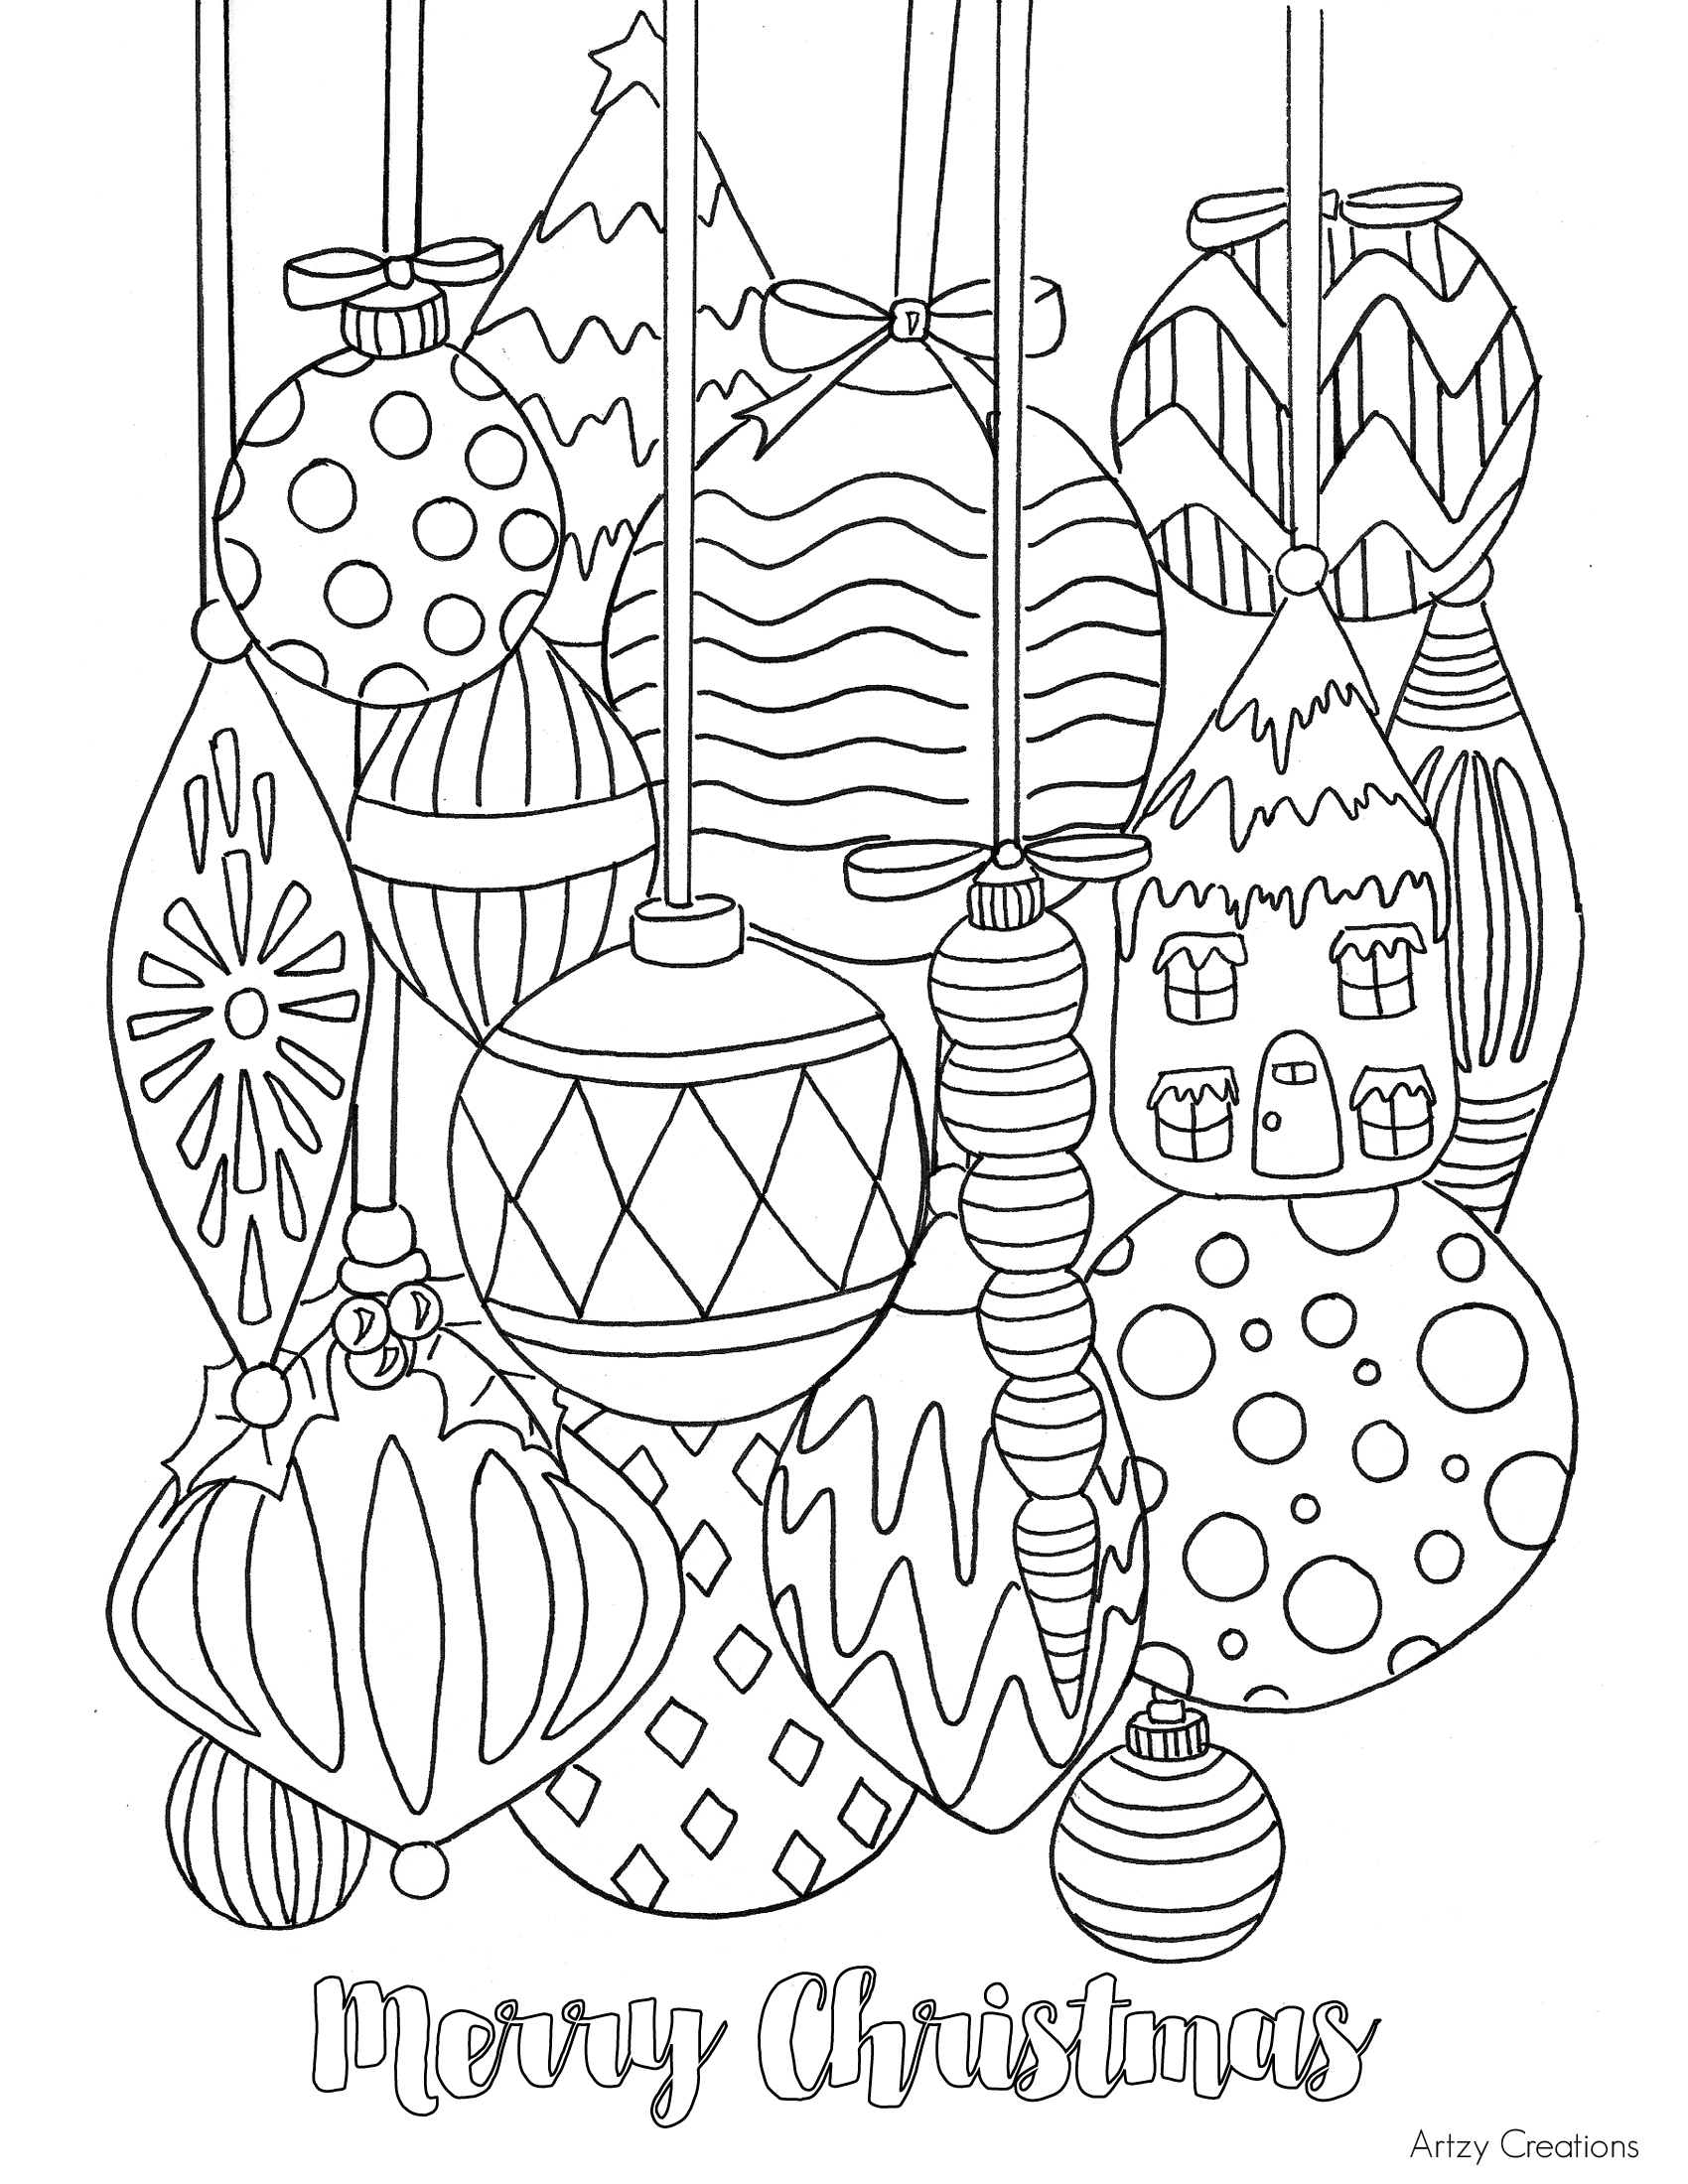 download your free christmas ornament coloring page here - Christmas Ornament Coloring Page